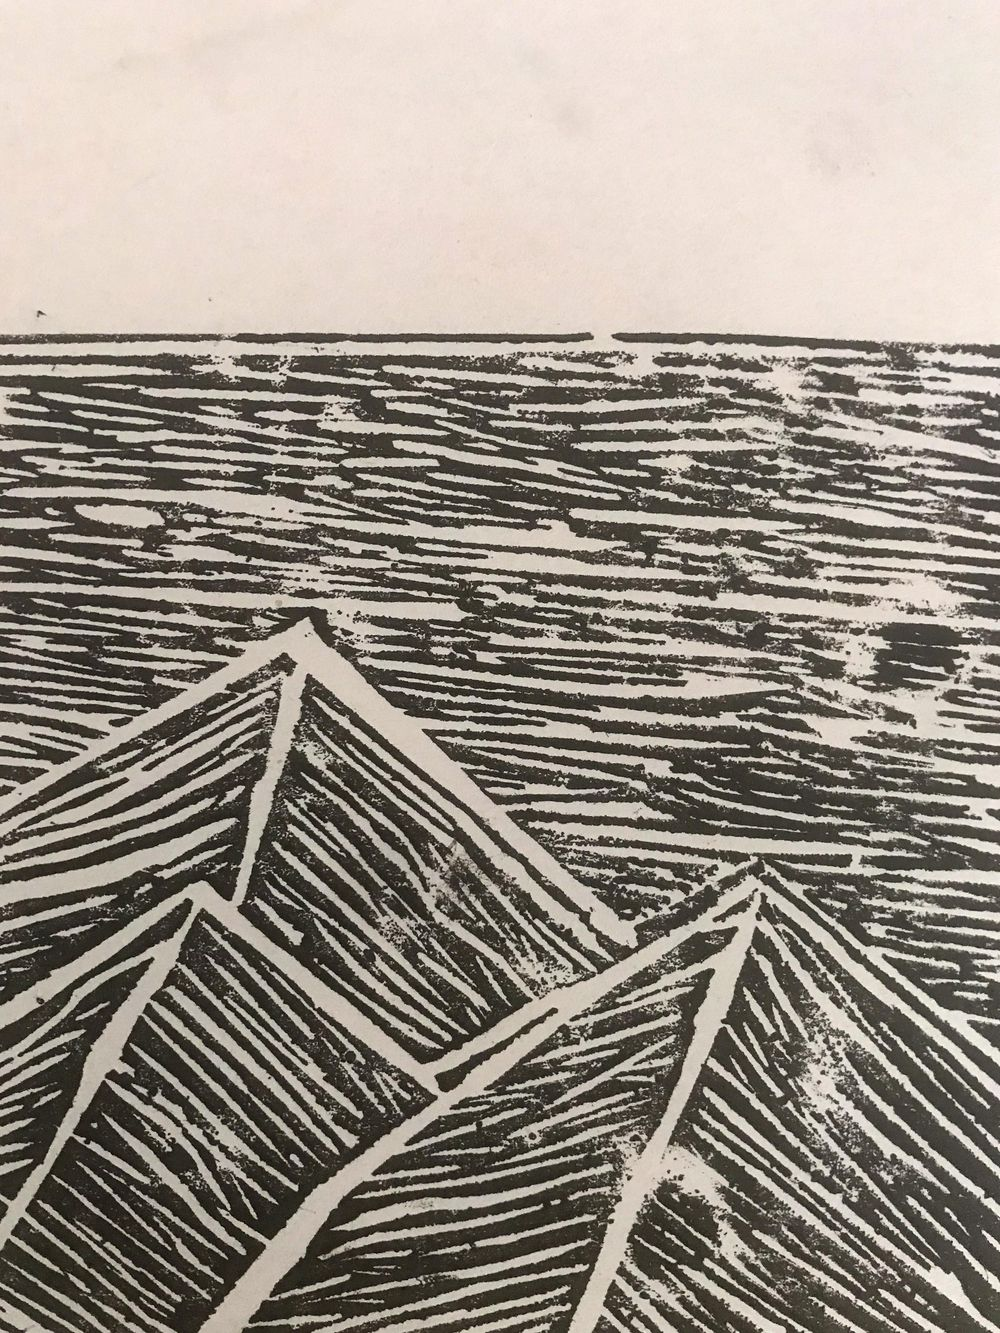 Lino cut Mountains - image 1 - student project